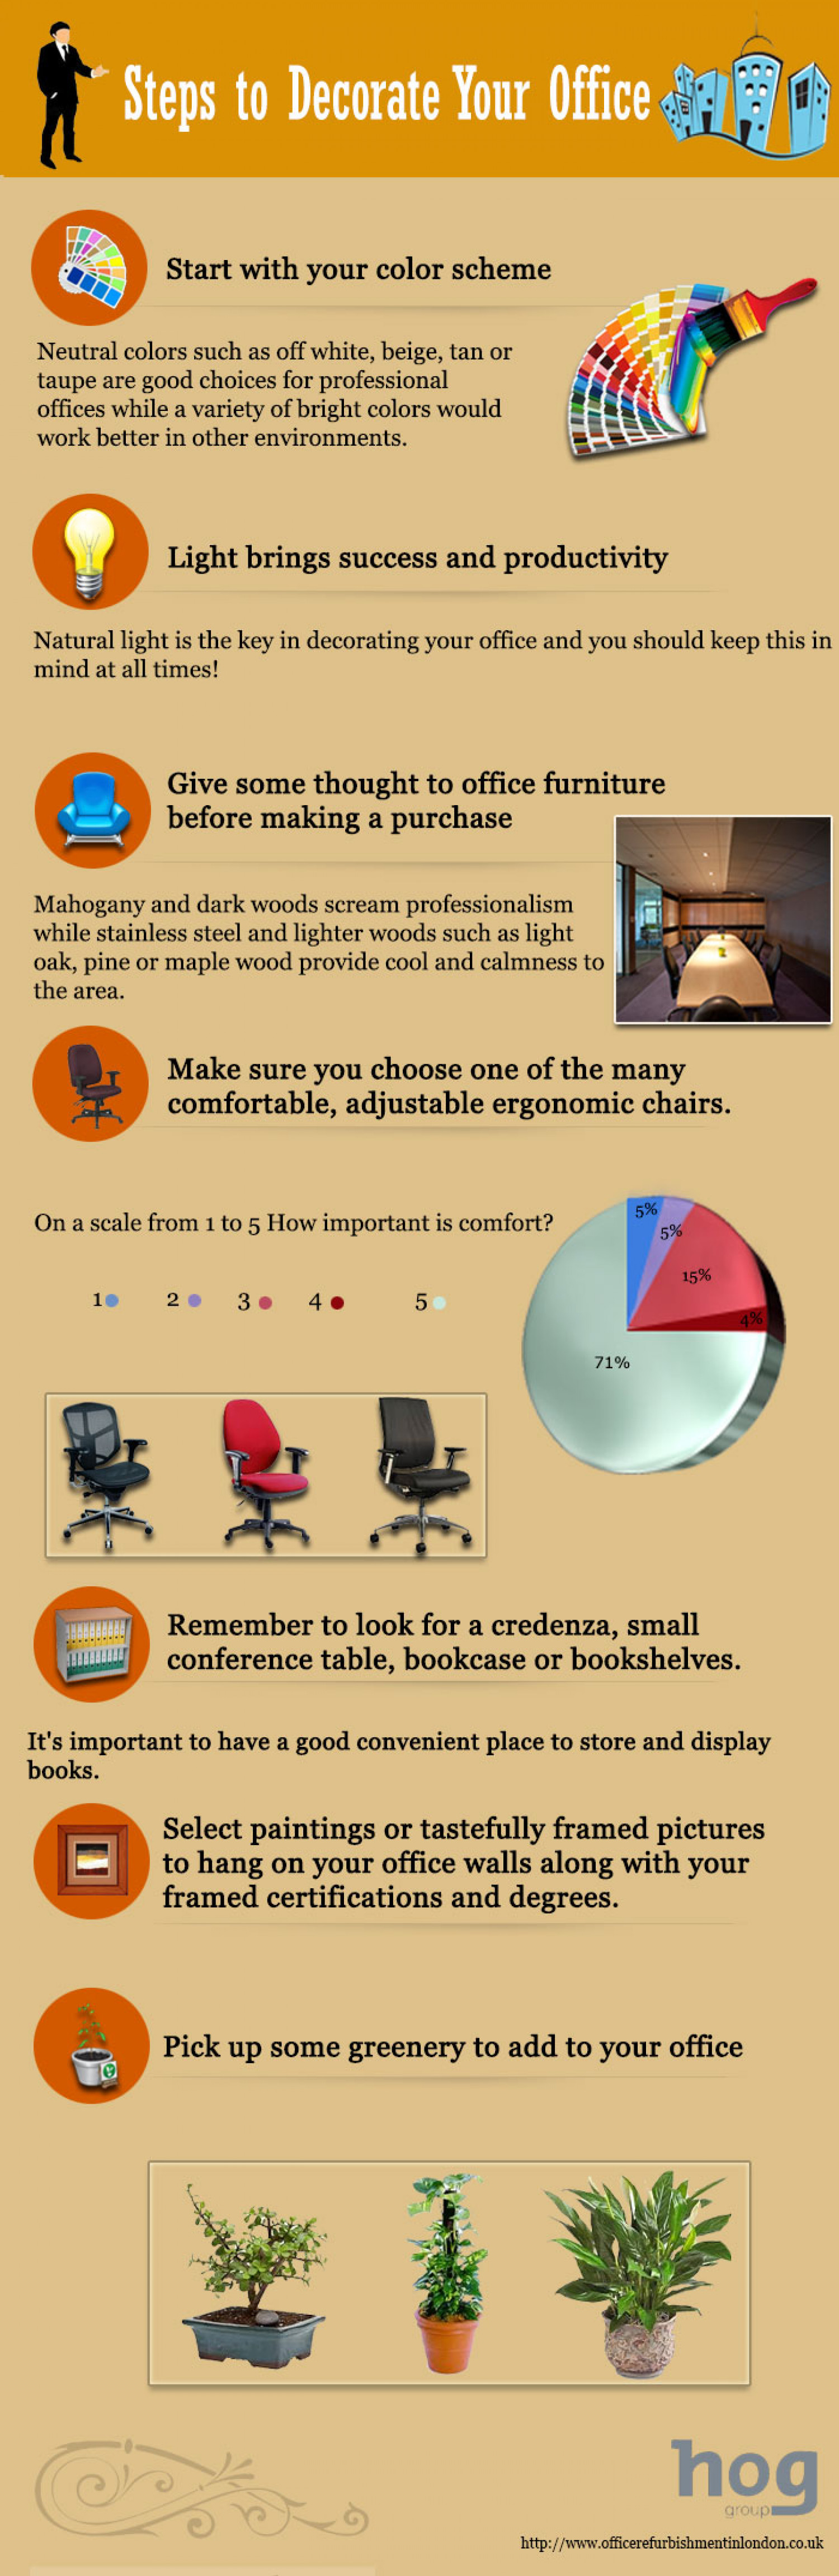 Steps to Decorate Your Office Infographic